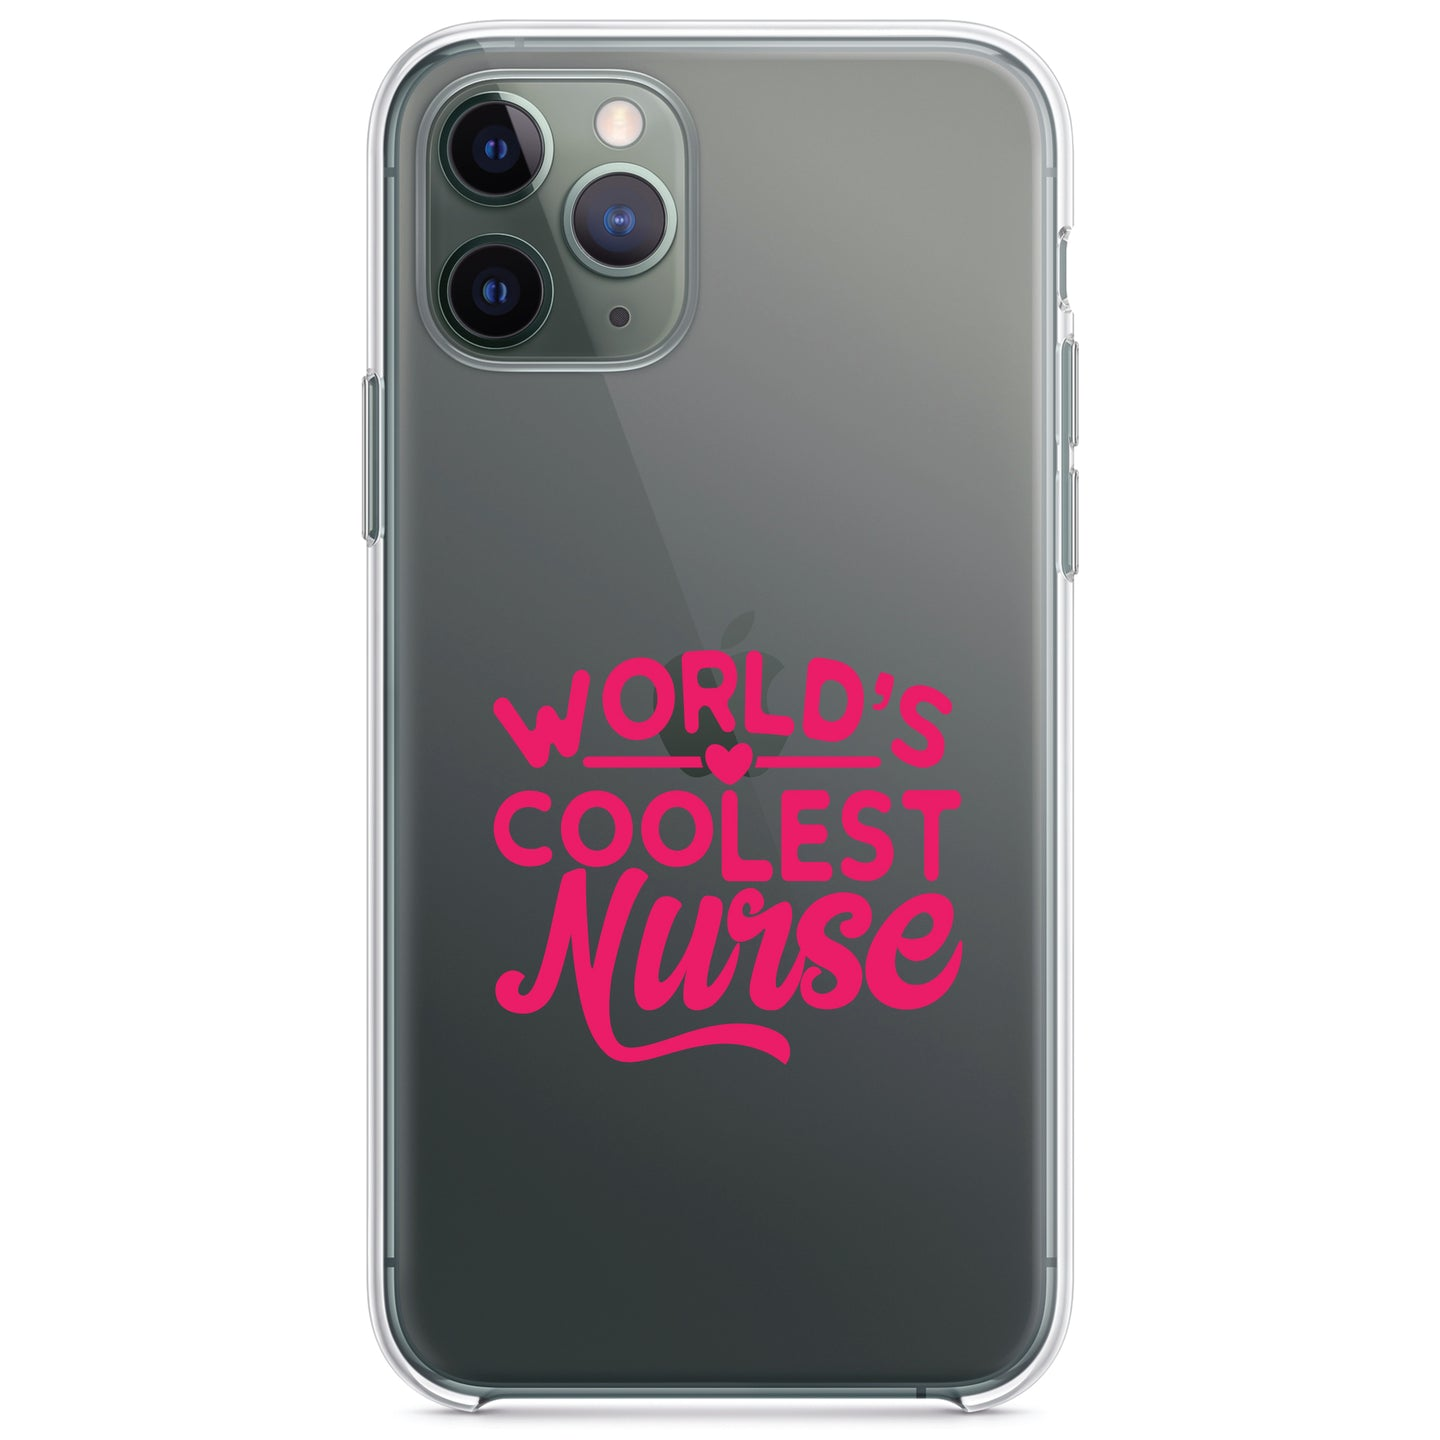 DistinctInk® Clear Shockproof Hybrid Case for Apple iPhone / Samsung Galaxy / Google Pixel - World's Coolest Nurse - Hot Pink